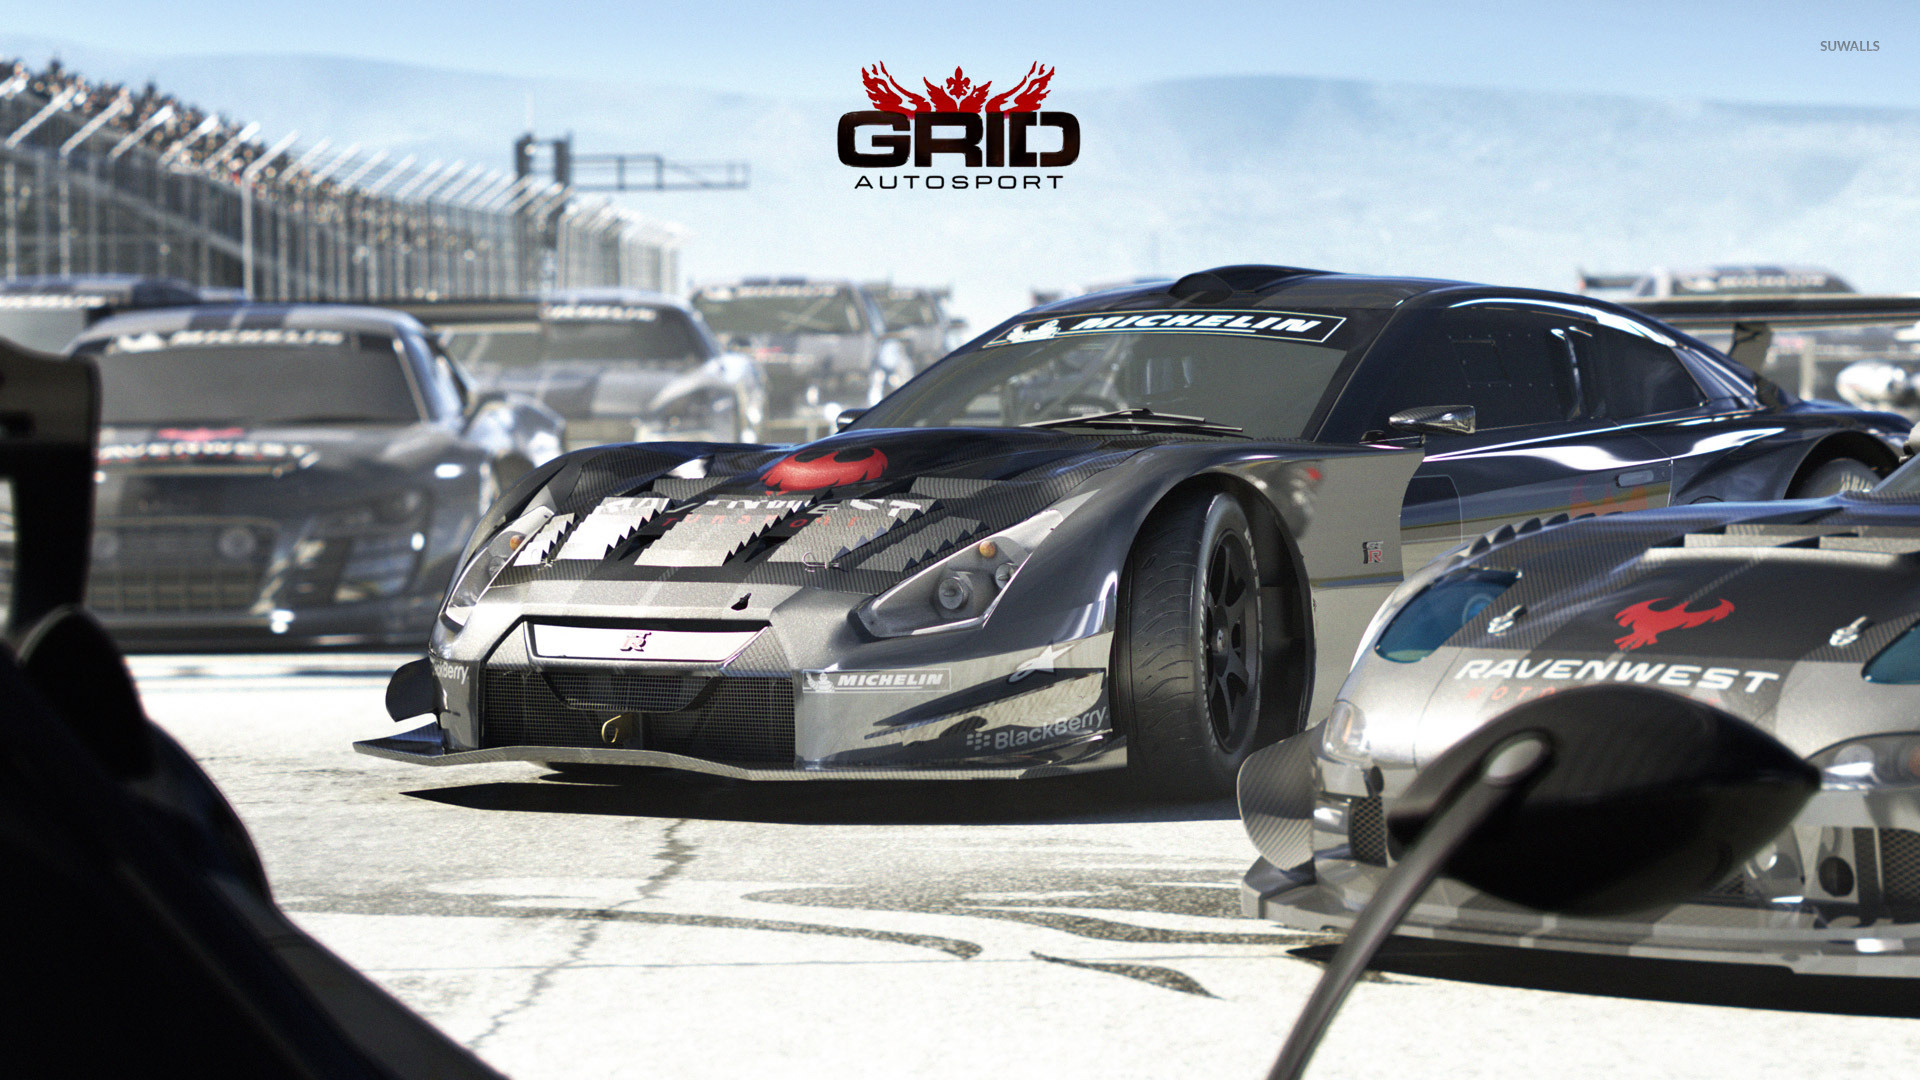 GRID Autosport [4] wallpaper - Game wallpapers - #31247